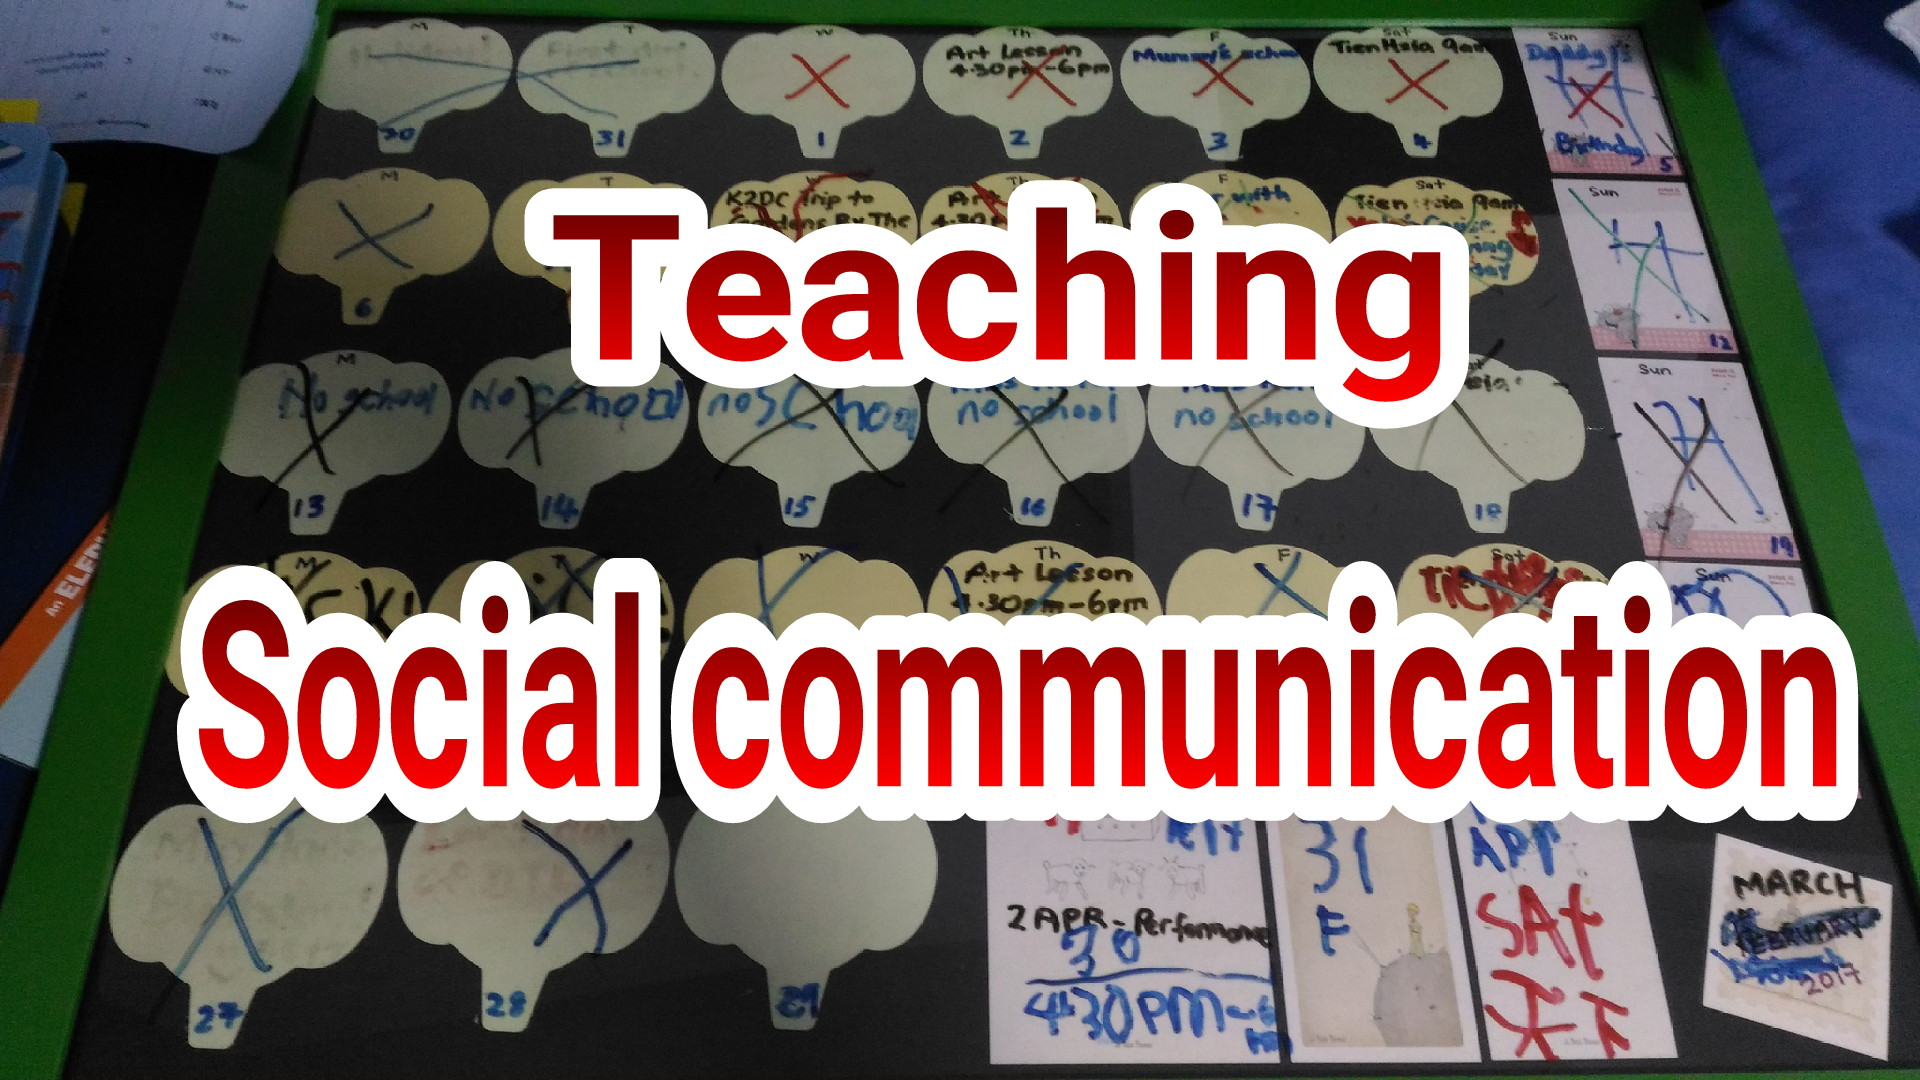 A series of lessons on Social Communication